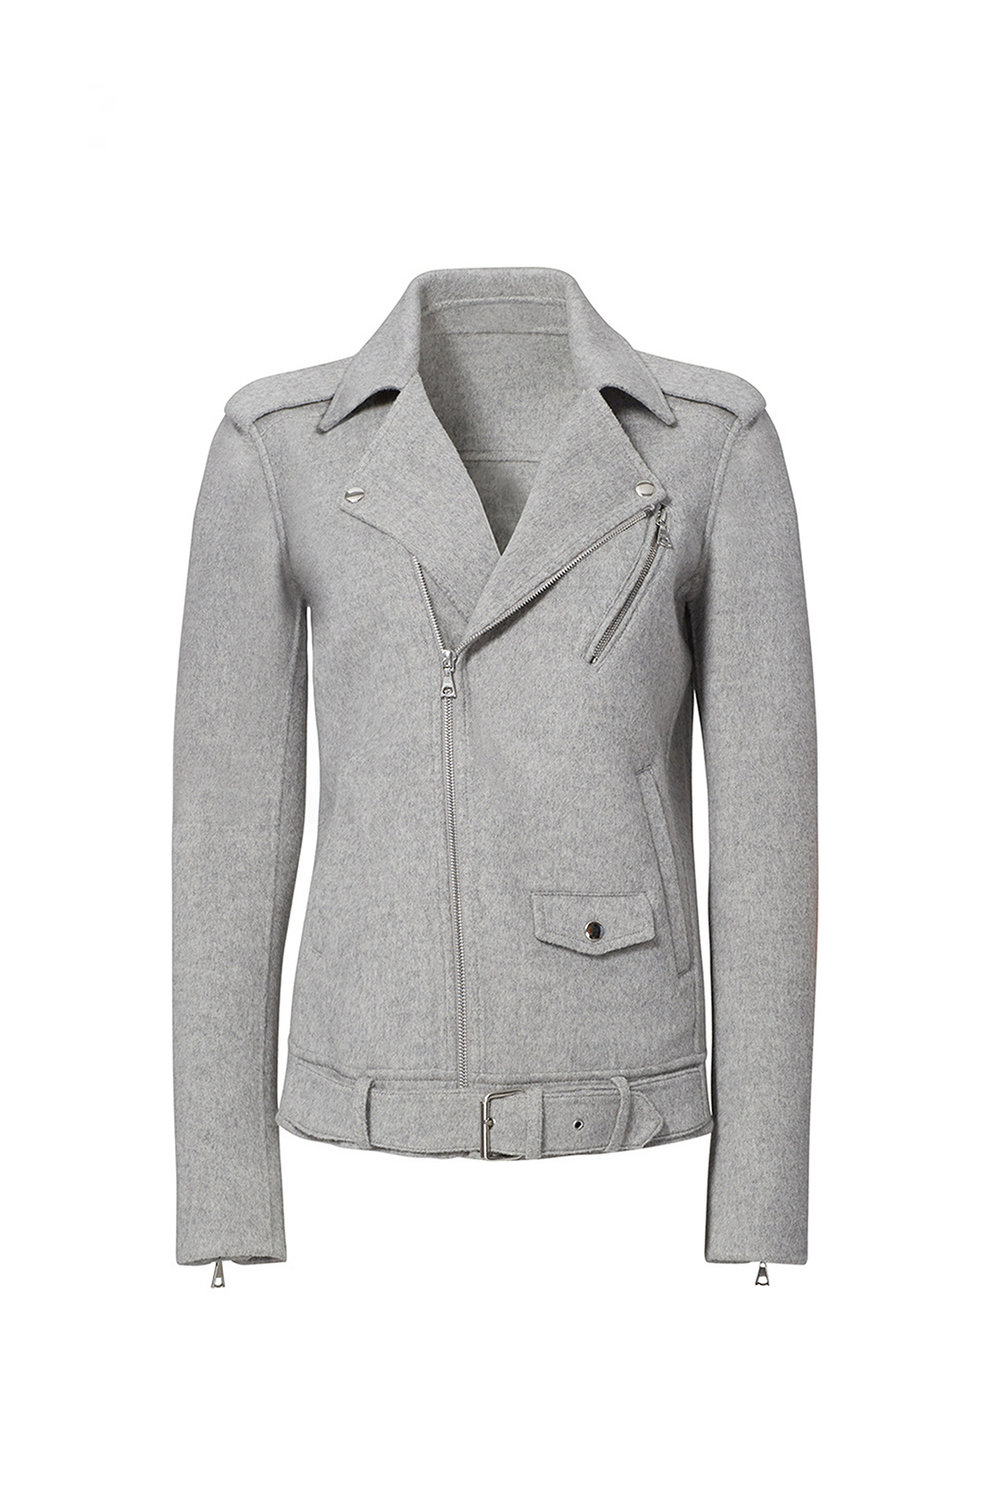 Theory Jacket from Rent the Runway